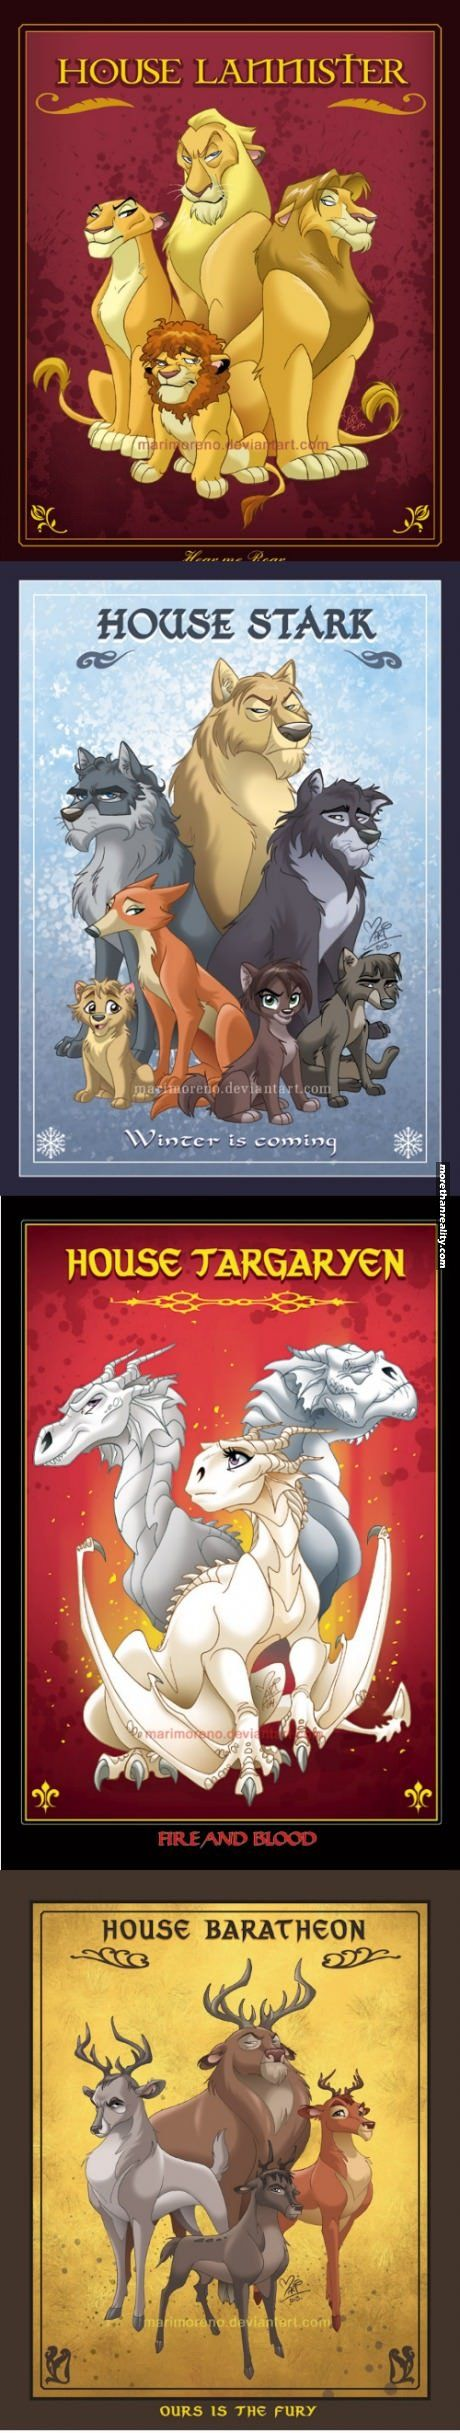 Game of Thrones Disney version